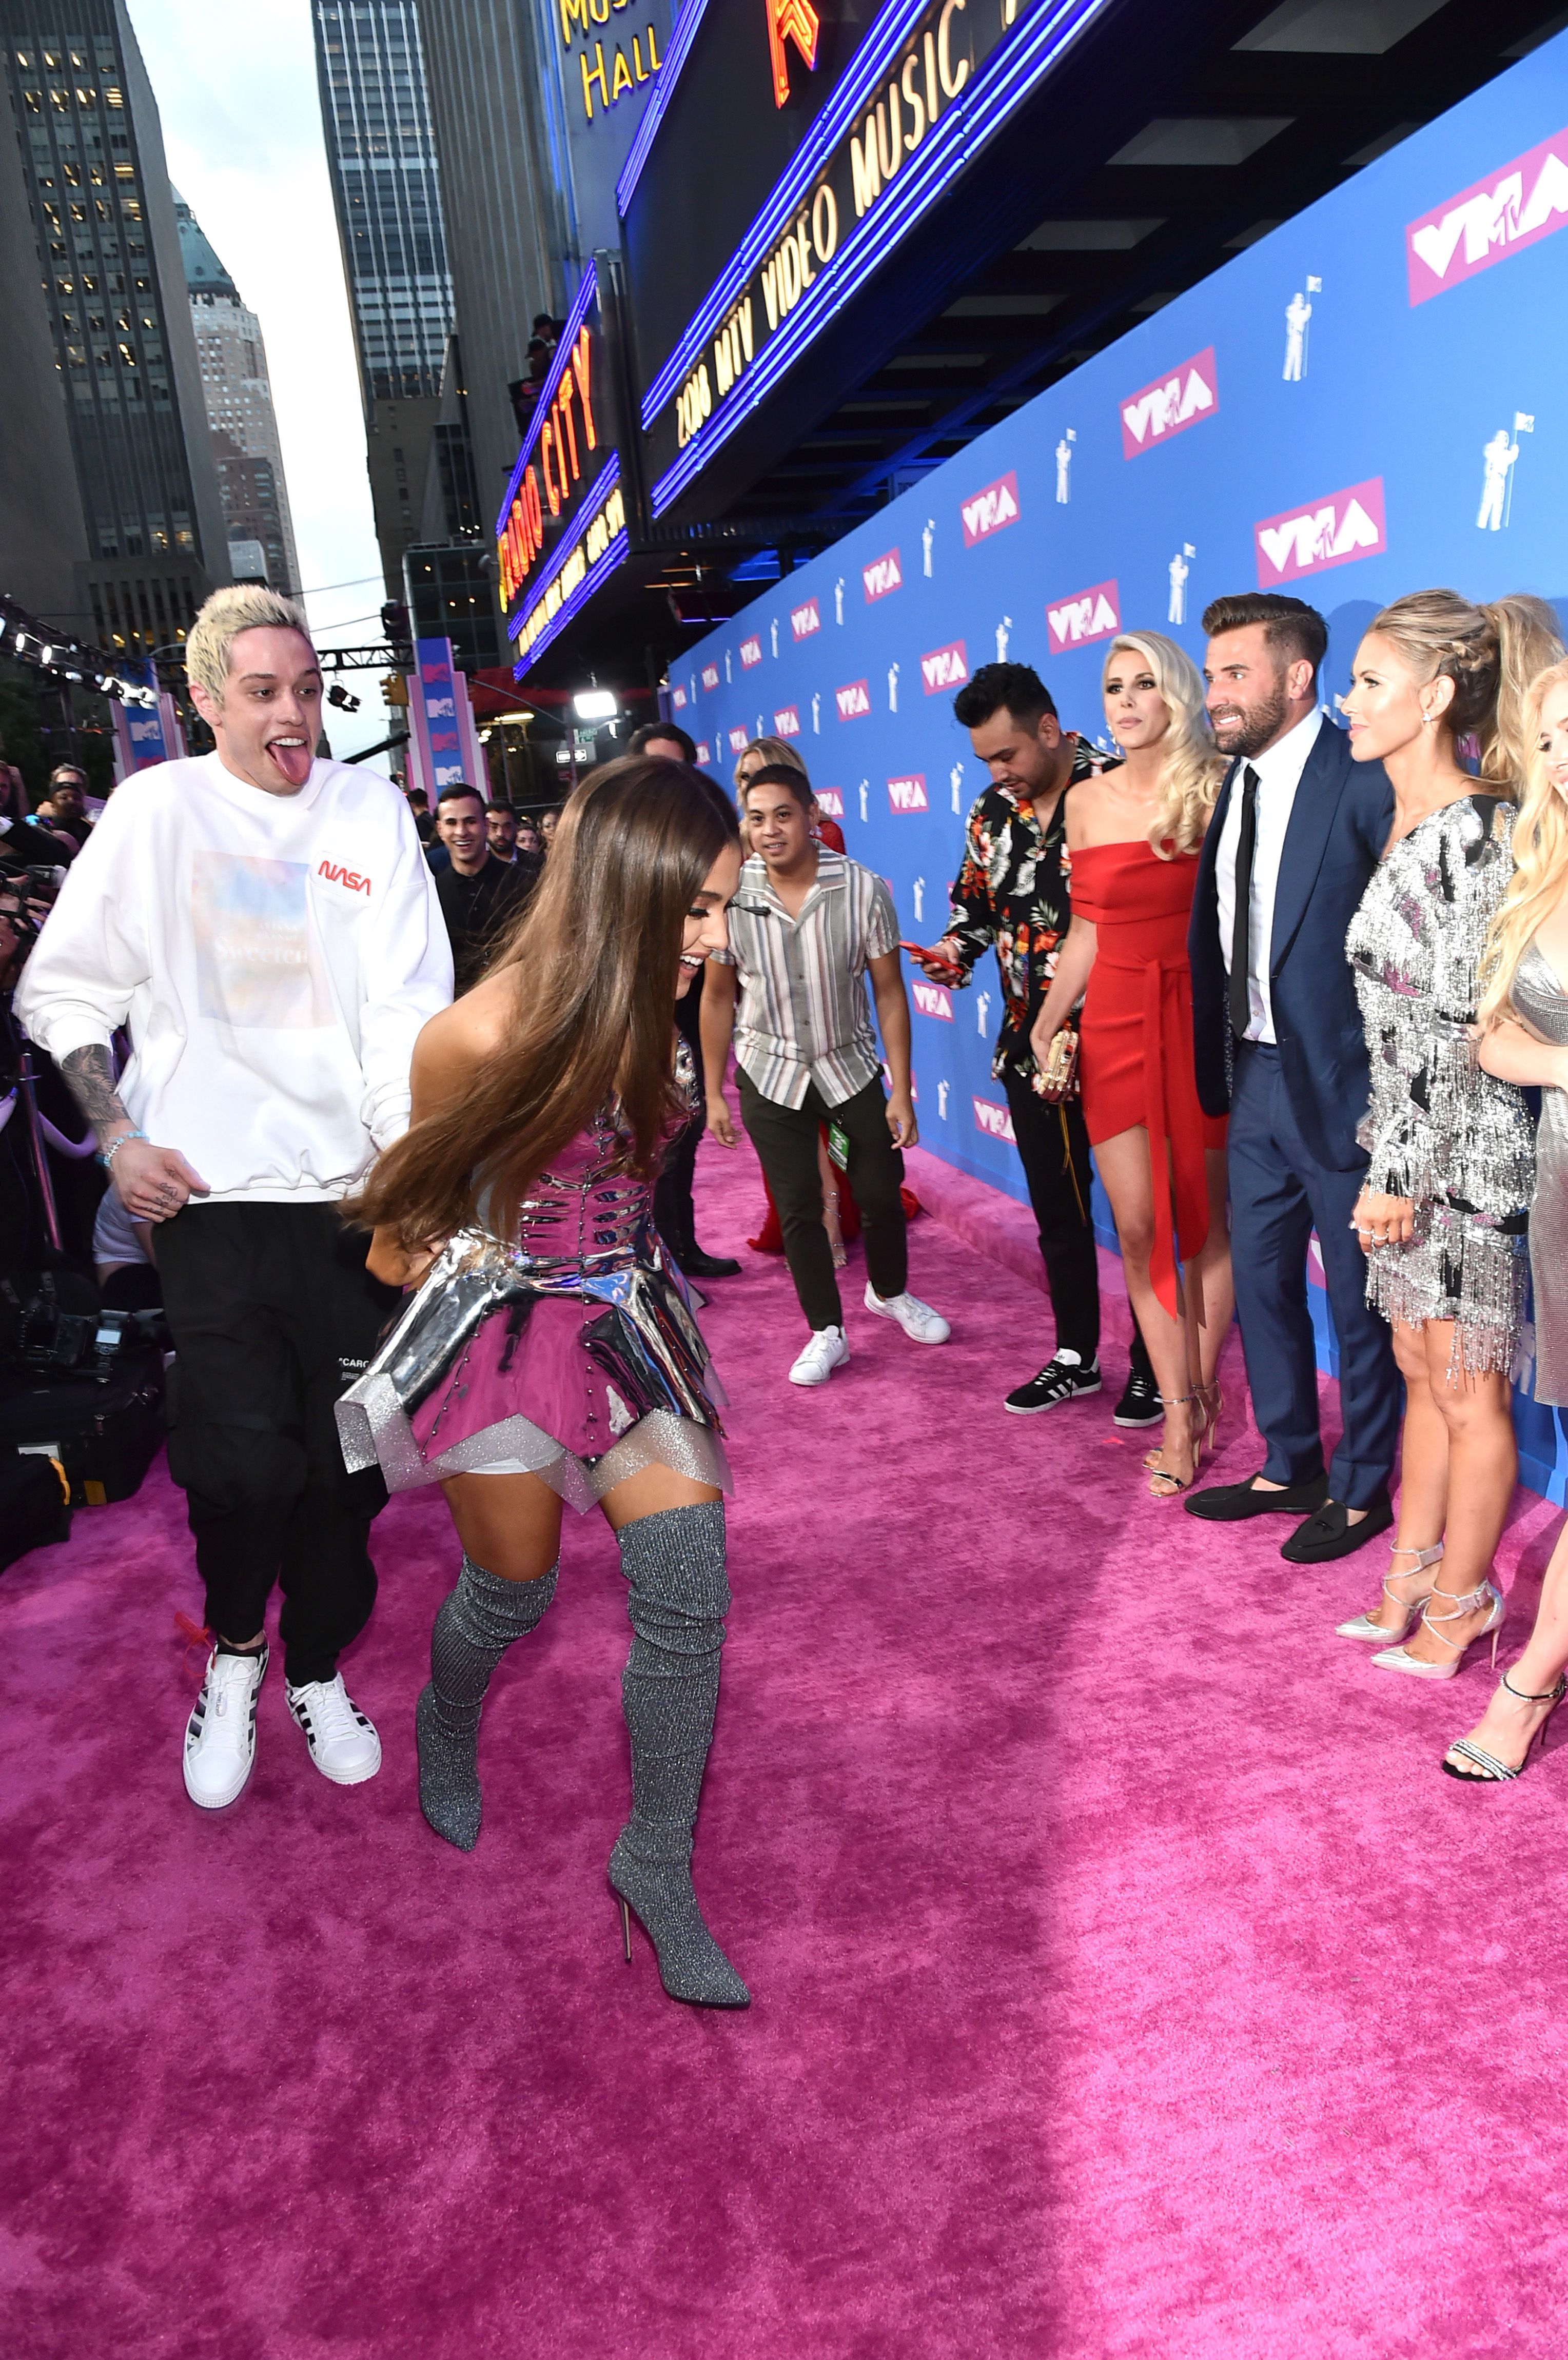 Tappeto Rosso Grande Ariana Grande And Pete Davidson Ran Across The Vmas Red Carpet And